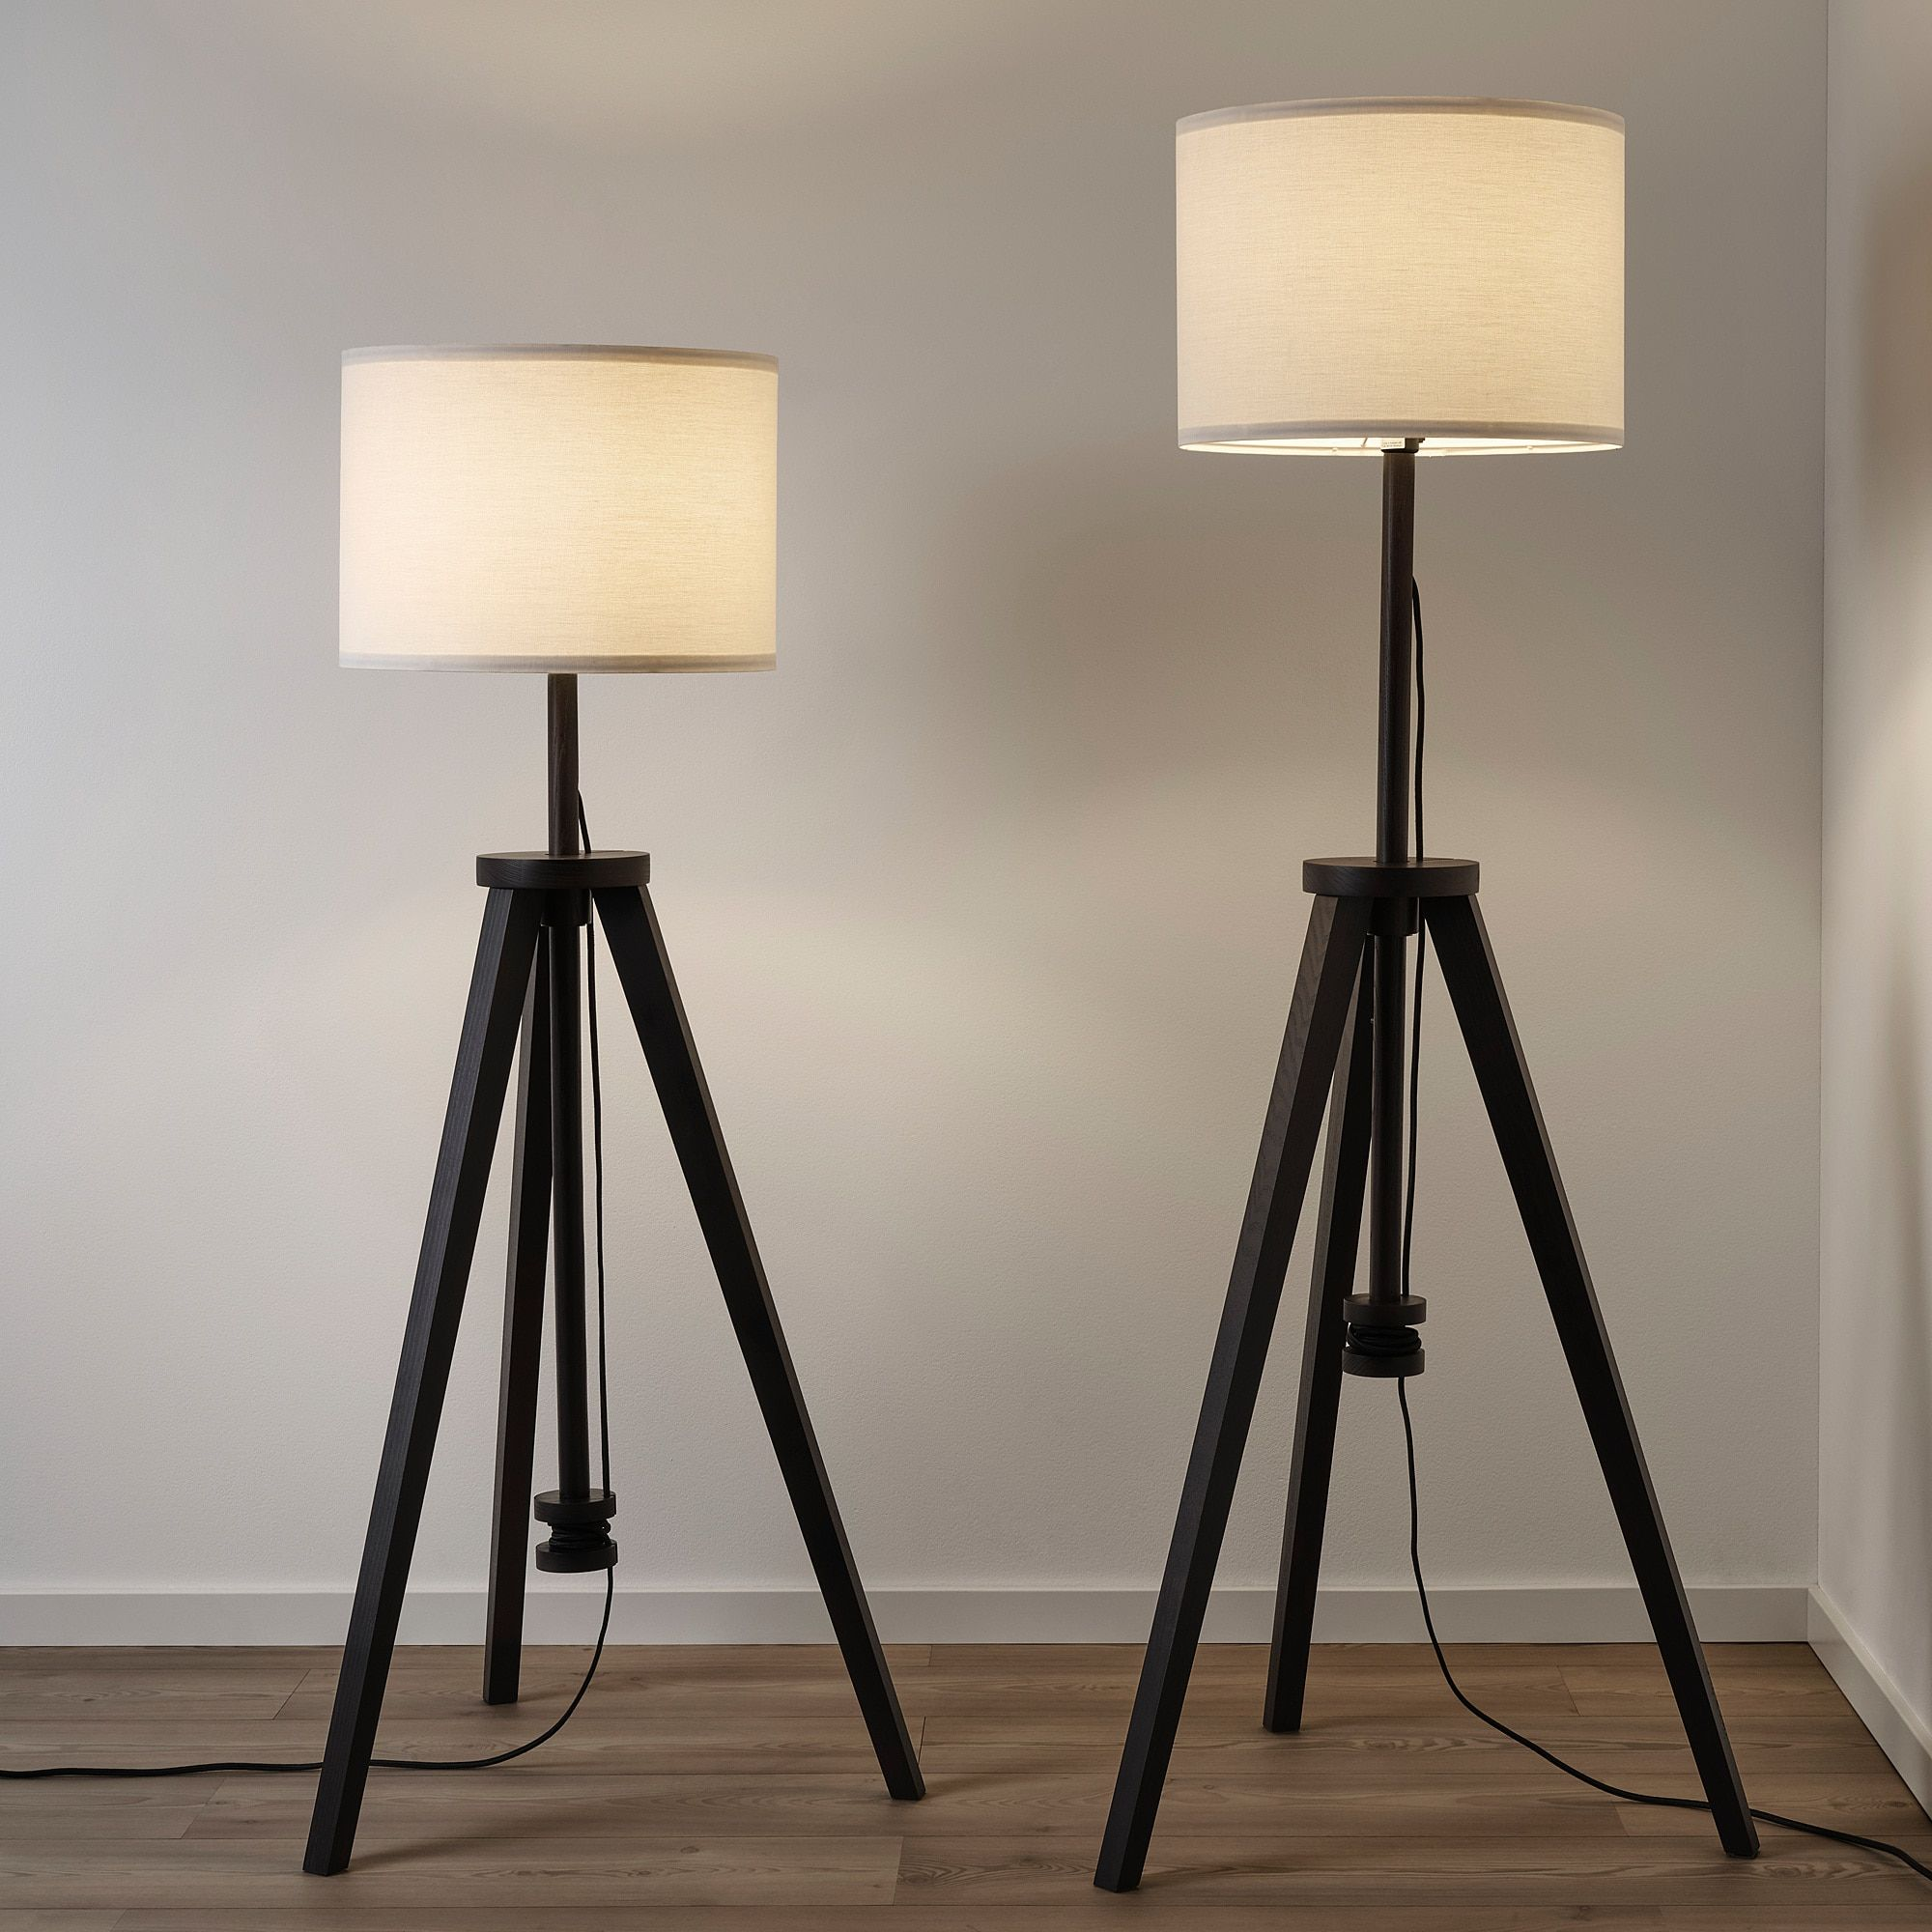 Us Furniture And Home Furnishings Floor Lamp Tall Lamps